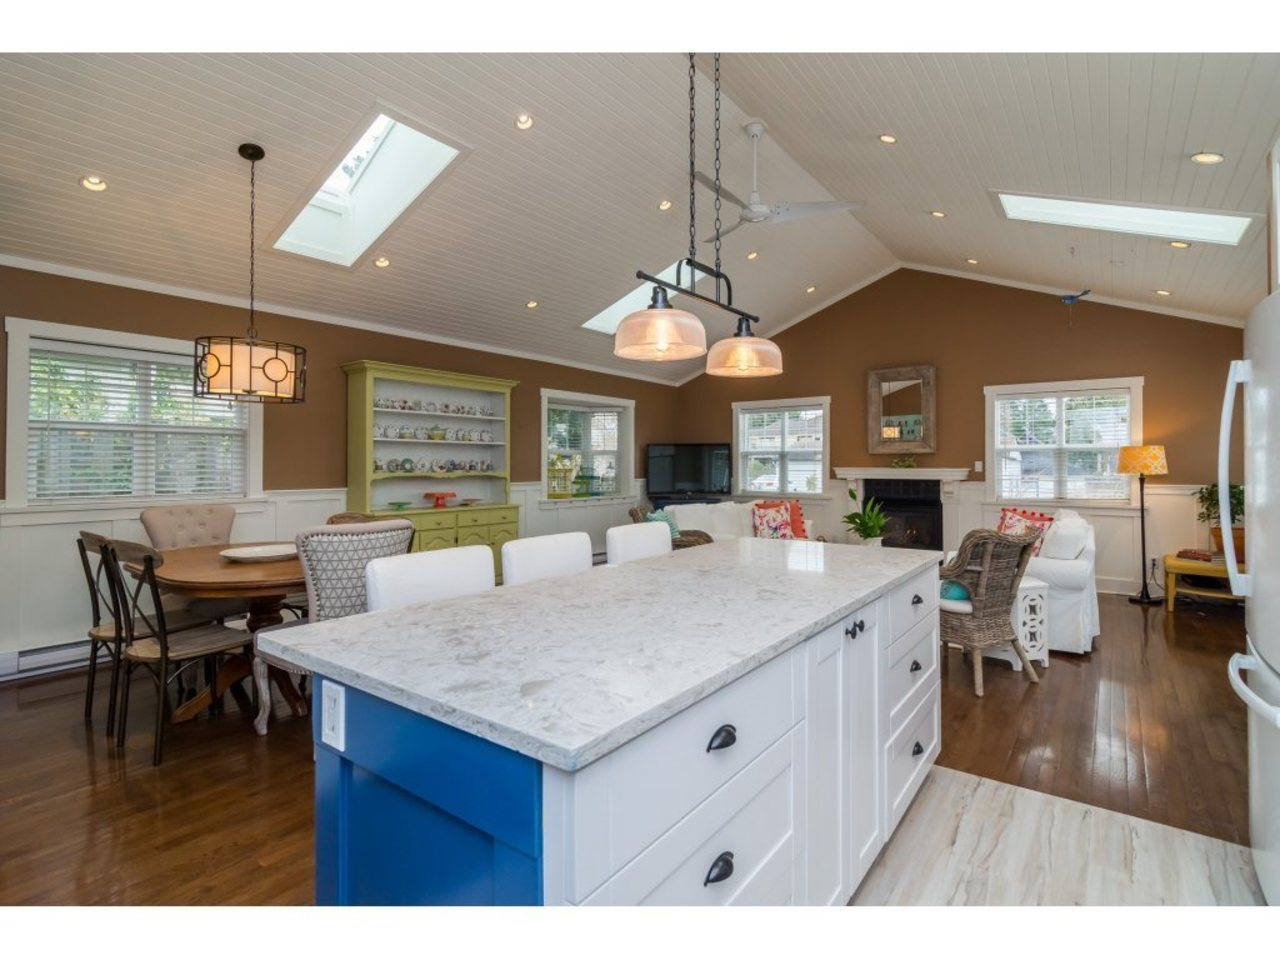 Great Room-Listed by Solon REM, Top Langley & Fraser Valley Realtor  at 7498 116a, Scottsdale, N. Delta